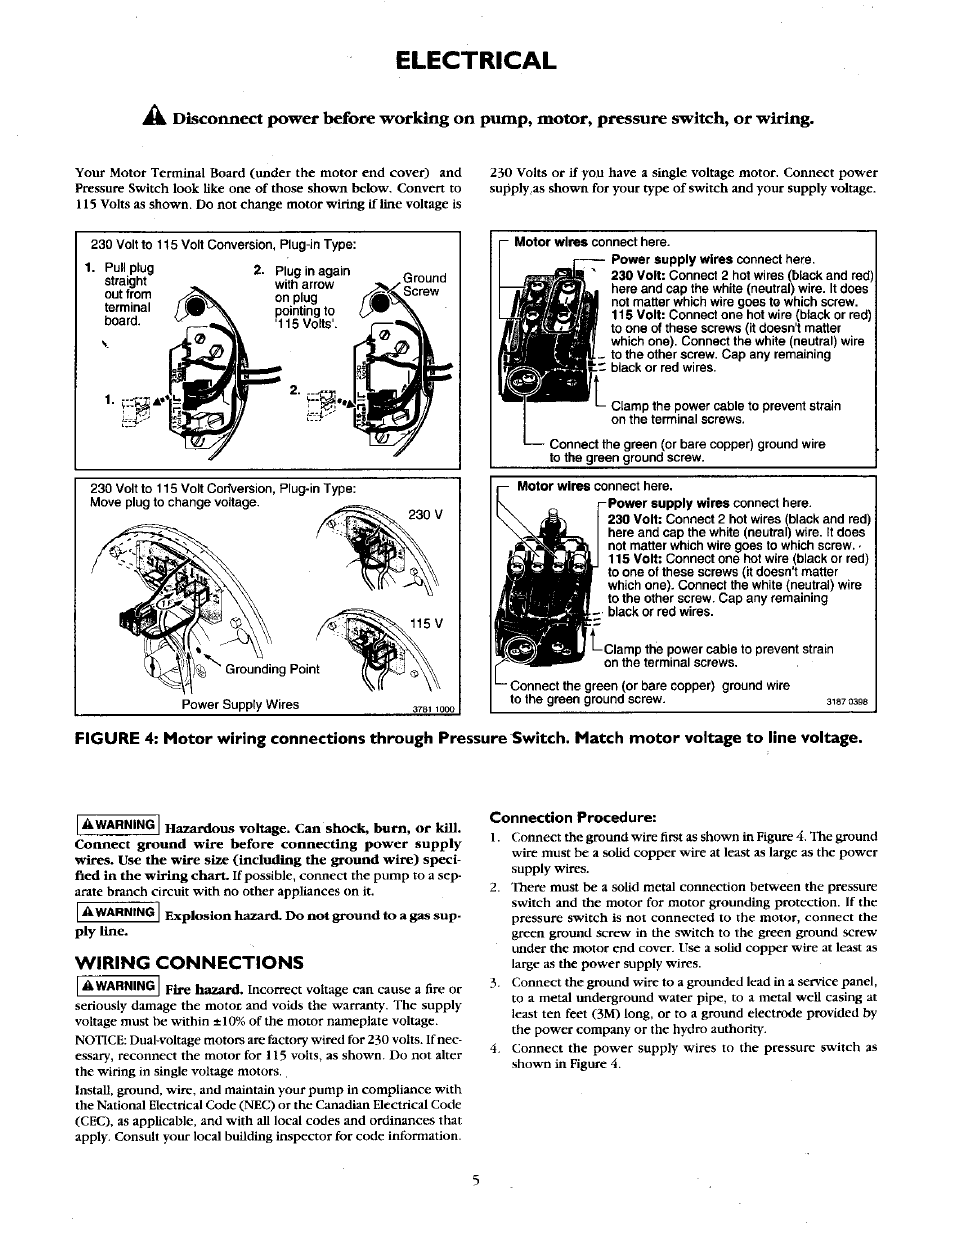 Electrical Wiring Connections Craftsman 390251883 User Manual Neutral Hot Ground Page 5 12